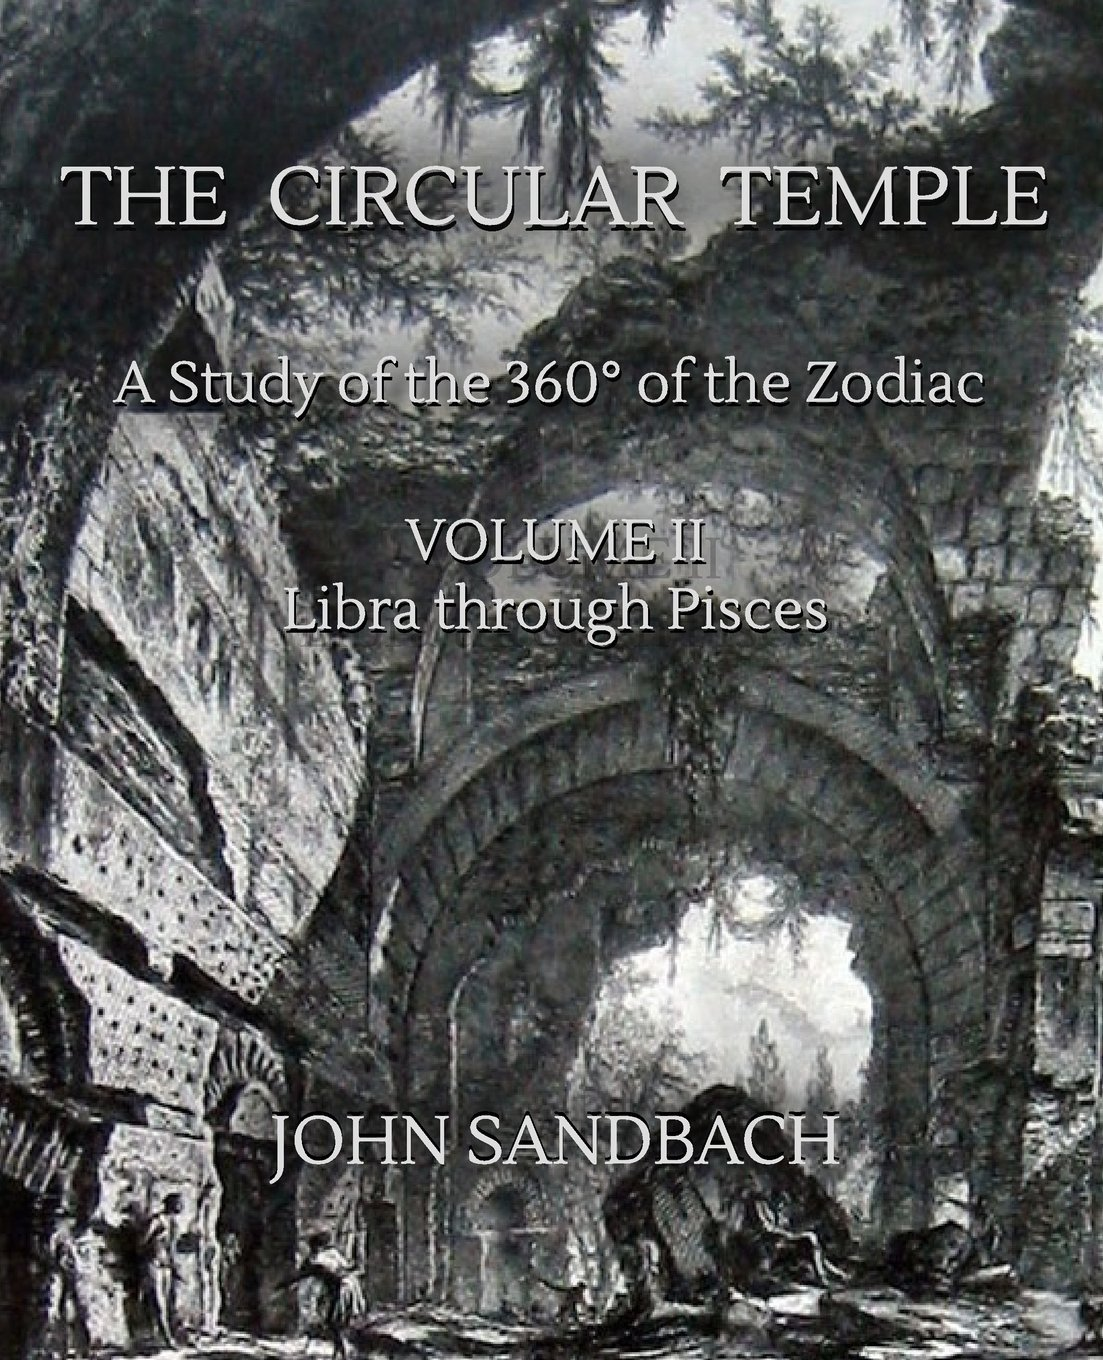 Download The Circular Temple Volume II: Libra through Pisces: A Study of the 360° of the Zodiac (Volume 2) ebook